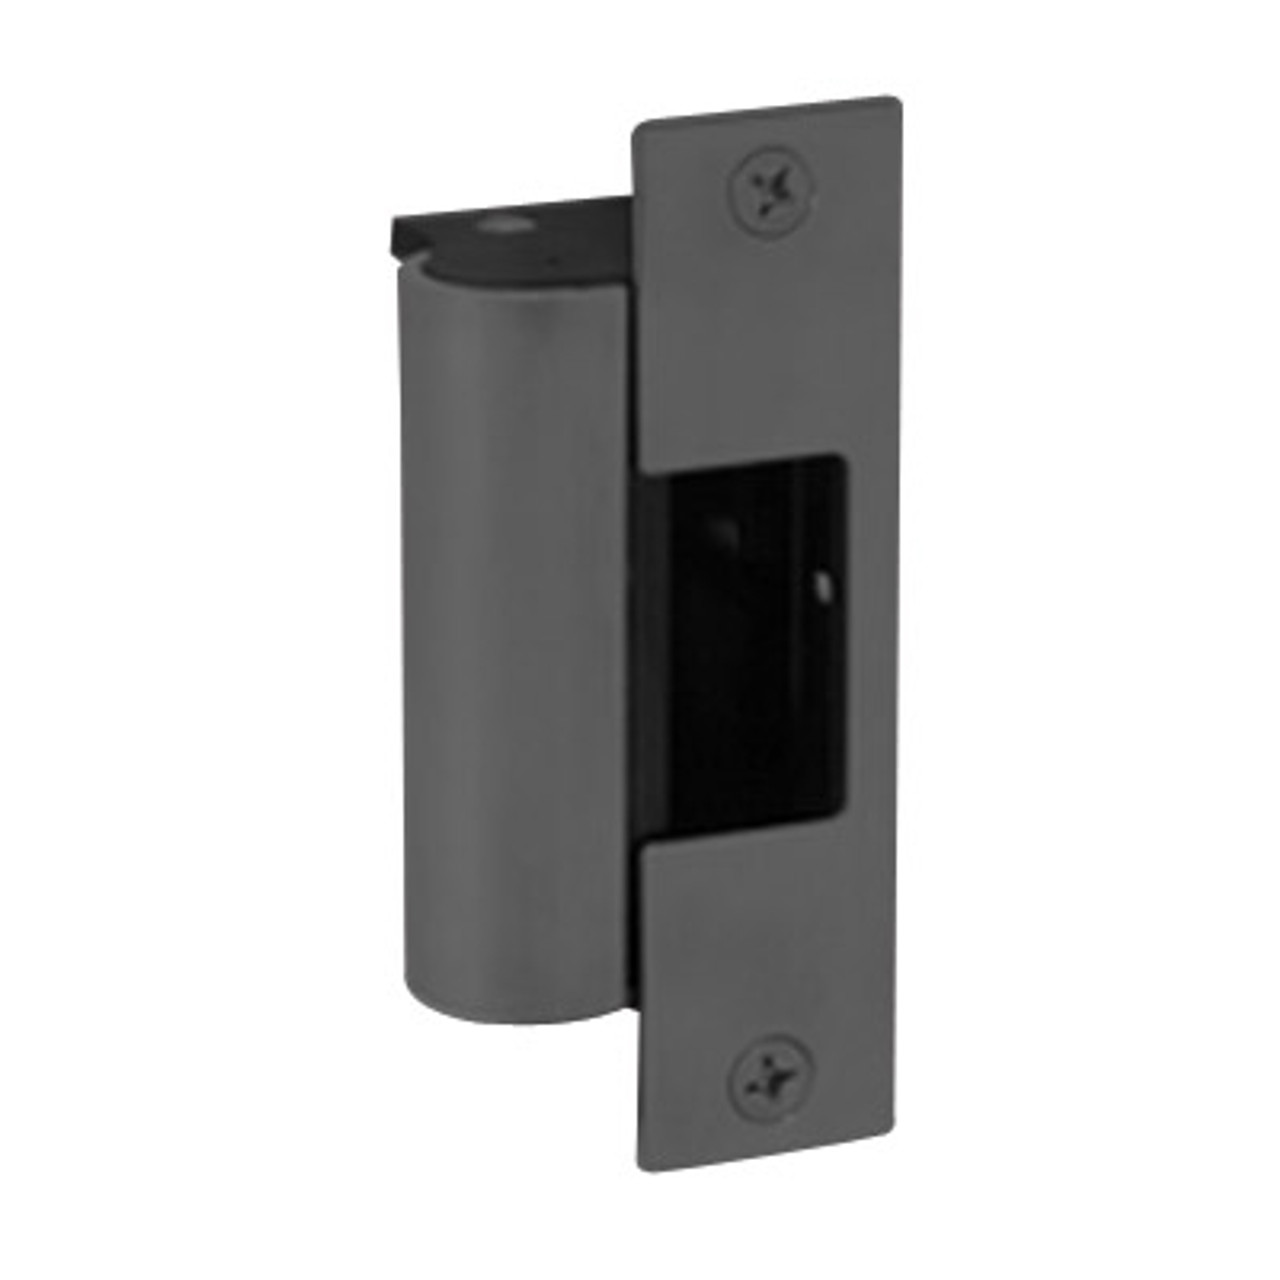 1006-F-BLK-LBM Hes Fail Safe Electric Strike Body with Latchbolt Monitor in Black Finish